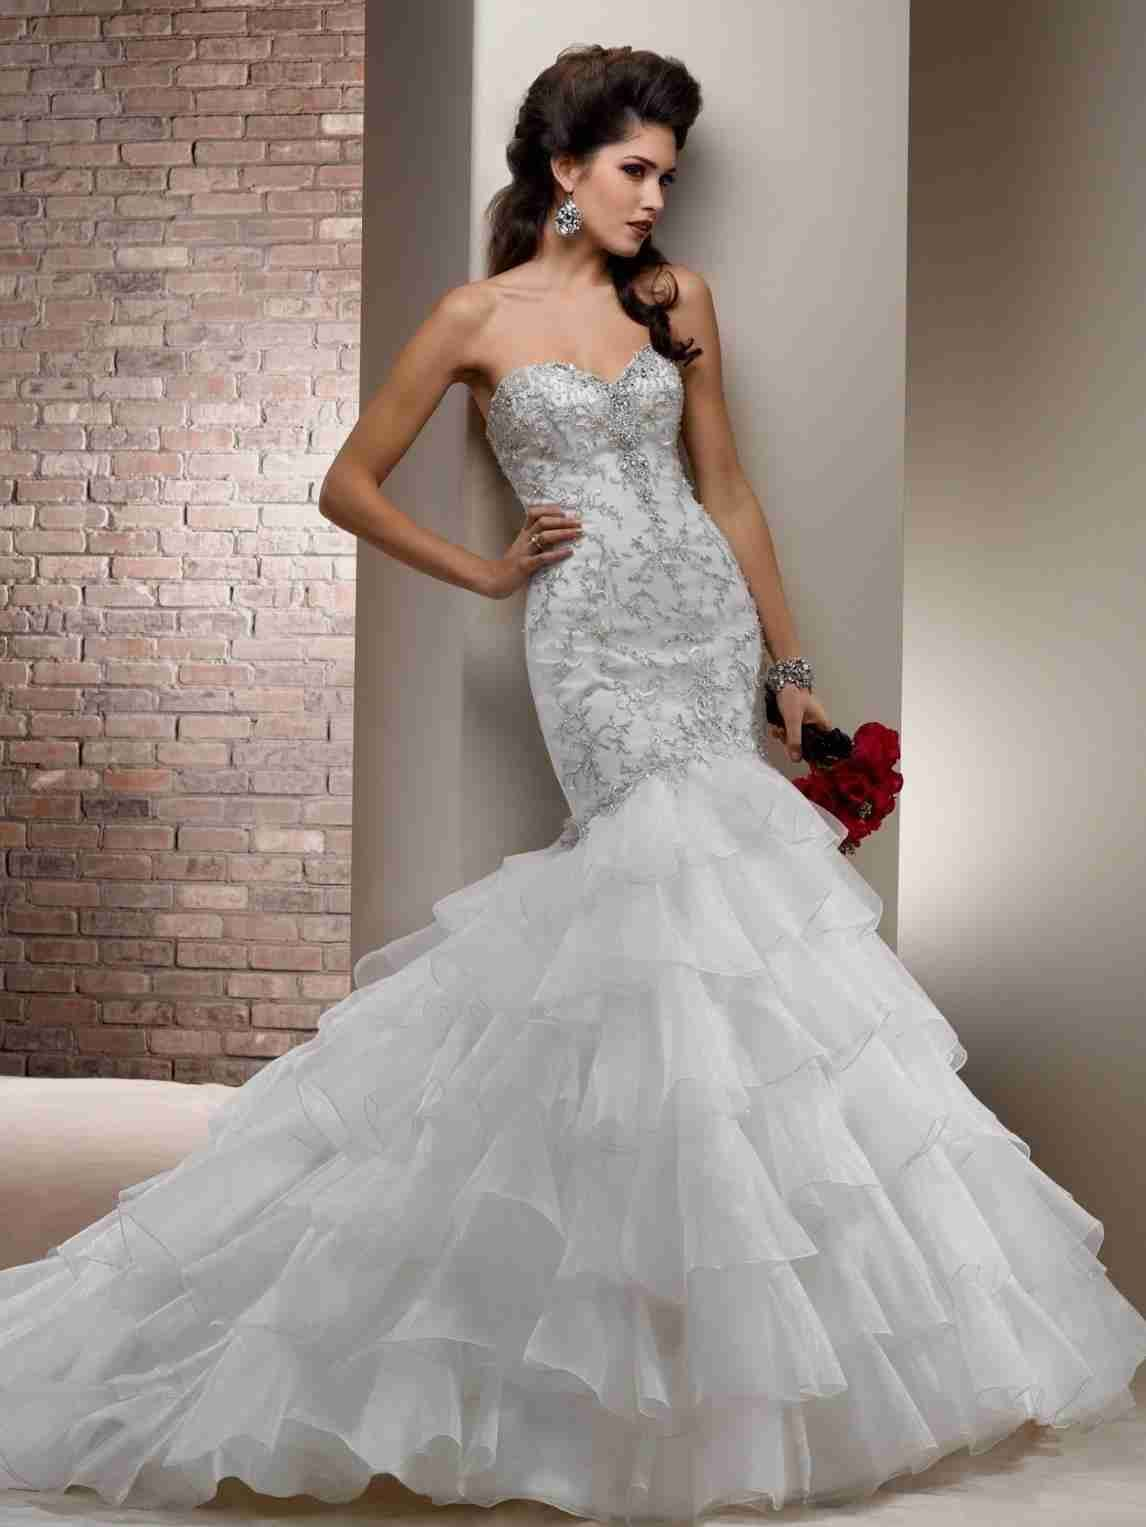 Suggested Sites Hint Wedbridal Site Clean Commerce Immediately This Instant Used Online Online Store Very Cheap Quality Online Sales Wedding Dresses Lace Sweetheart Wedding Dress Wedding Dresses Lace